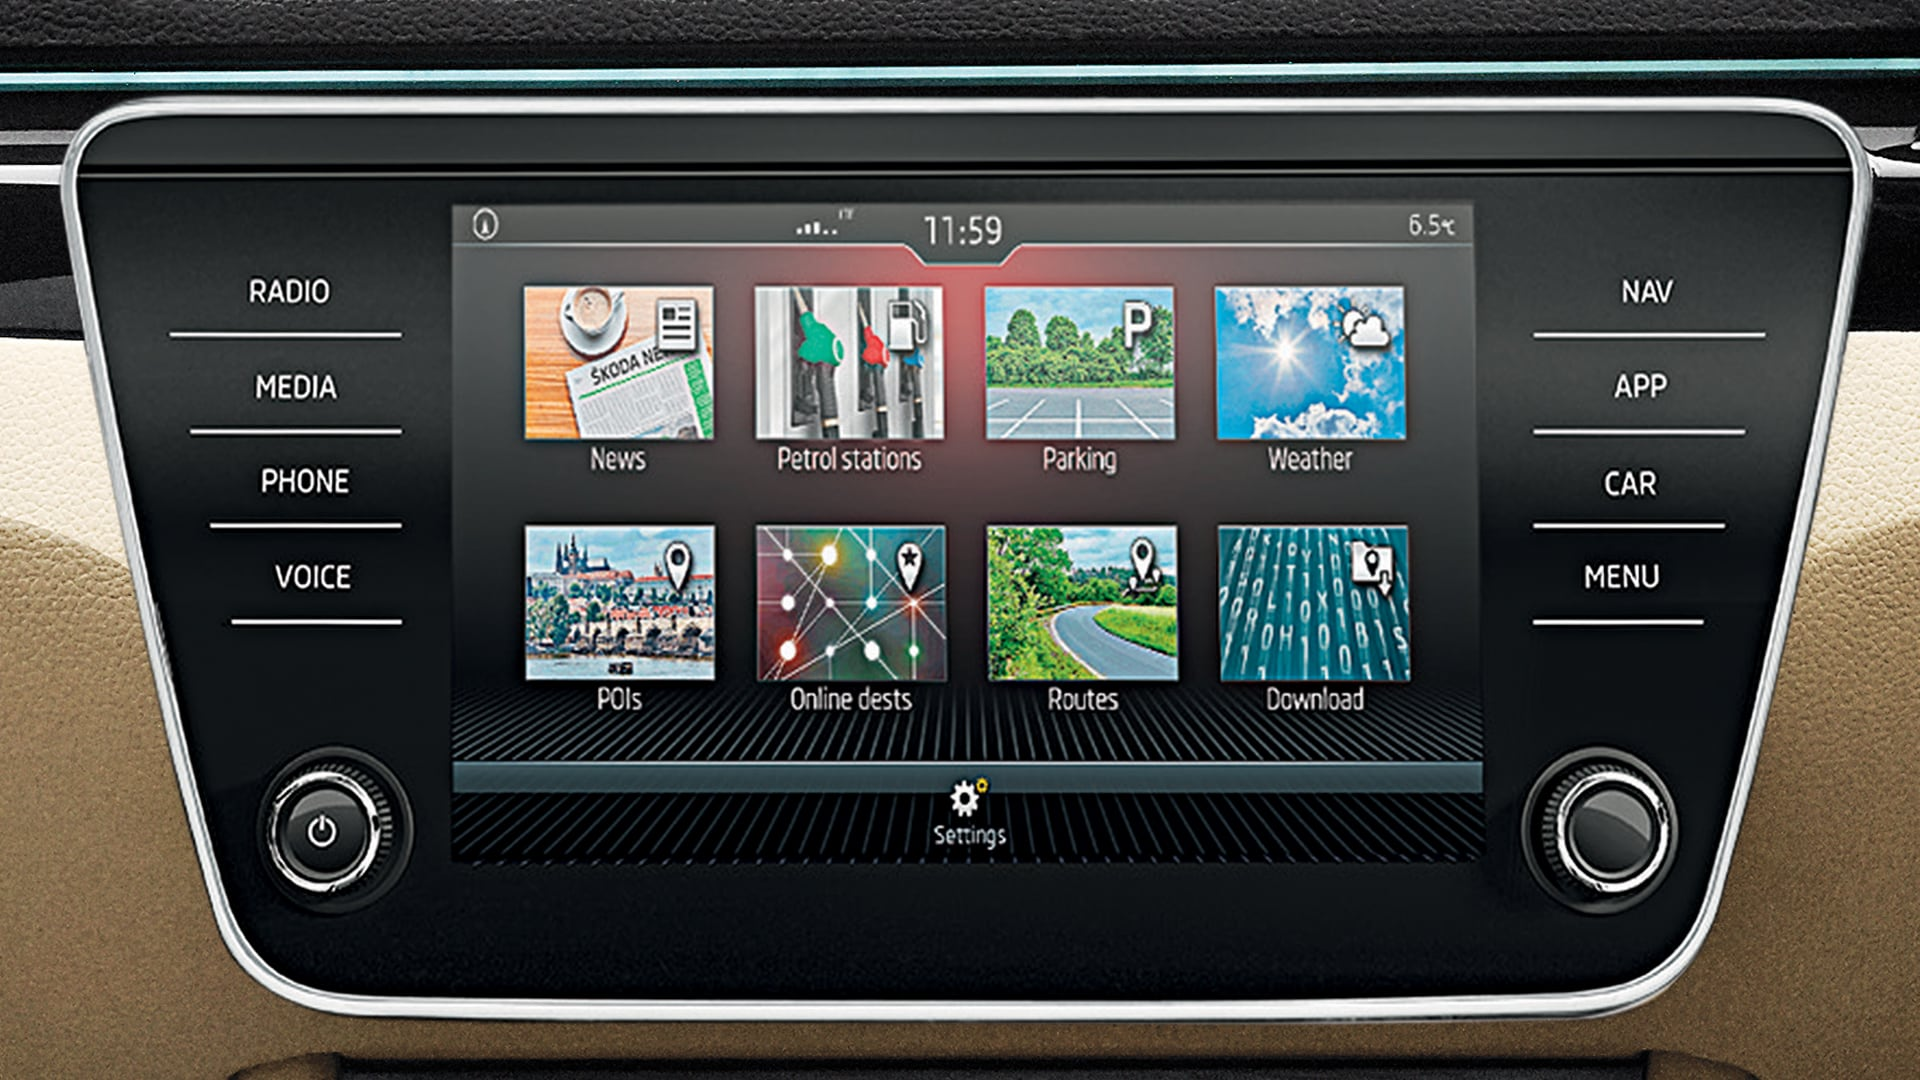 The eight-inch infotainment system tries to be the jewel in the Superb's crown. This floating display with a glass design gets proximity sensors and is part of the new generation Amundsen Infotainment System, with inbuilt navigation.